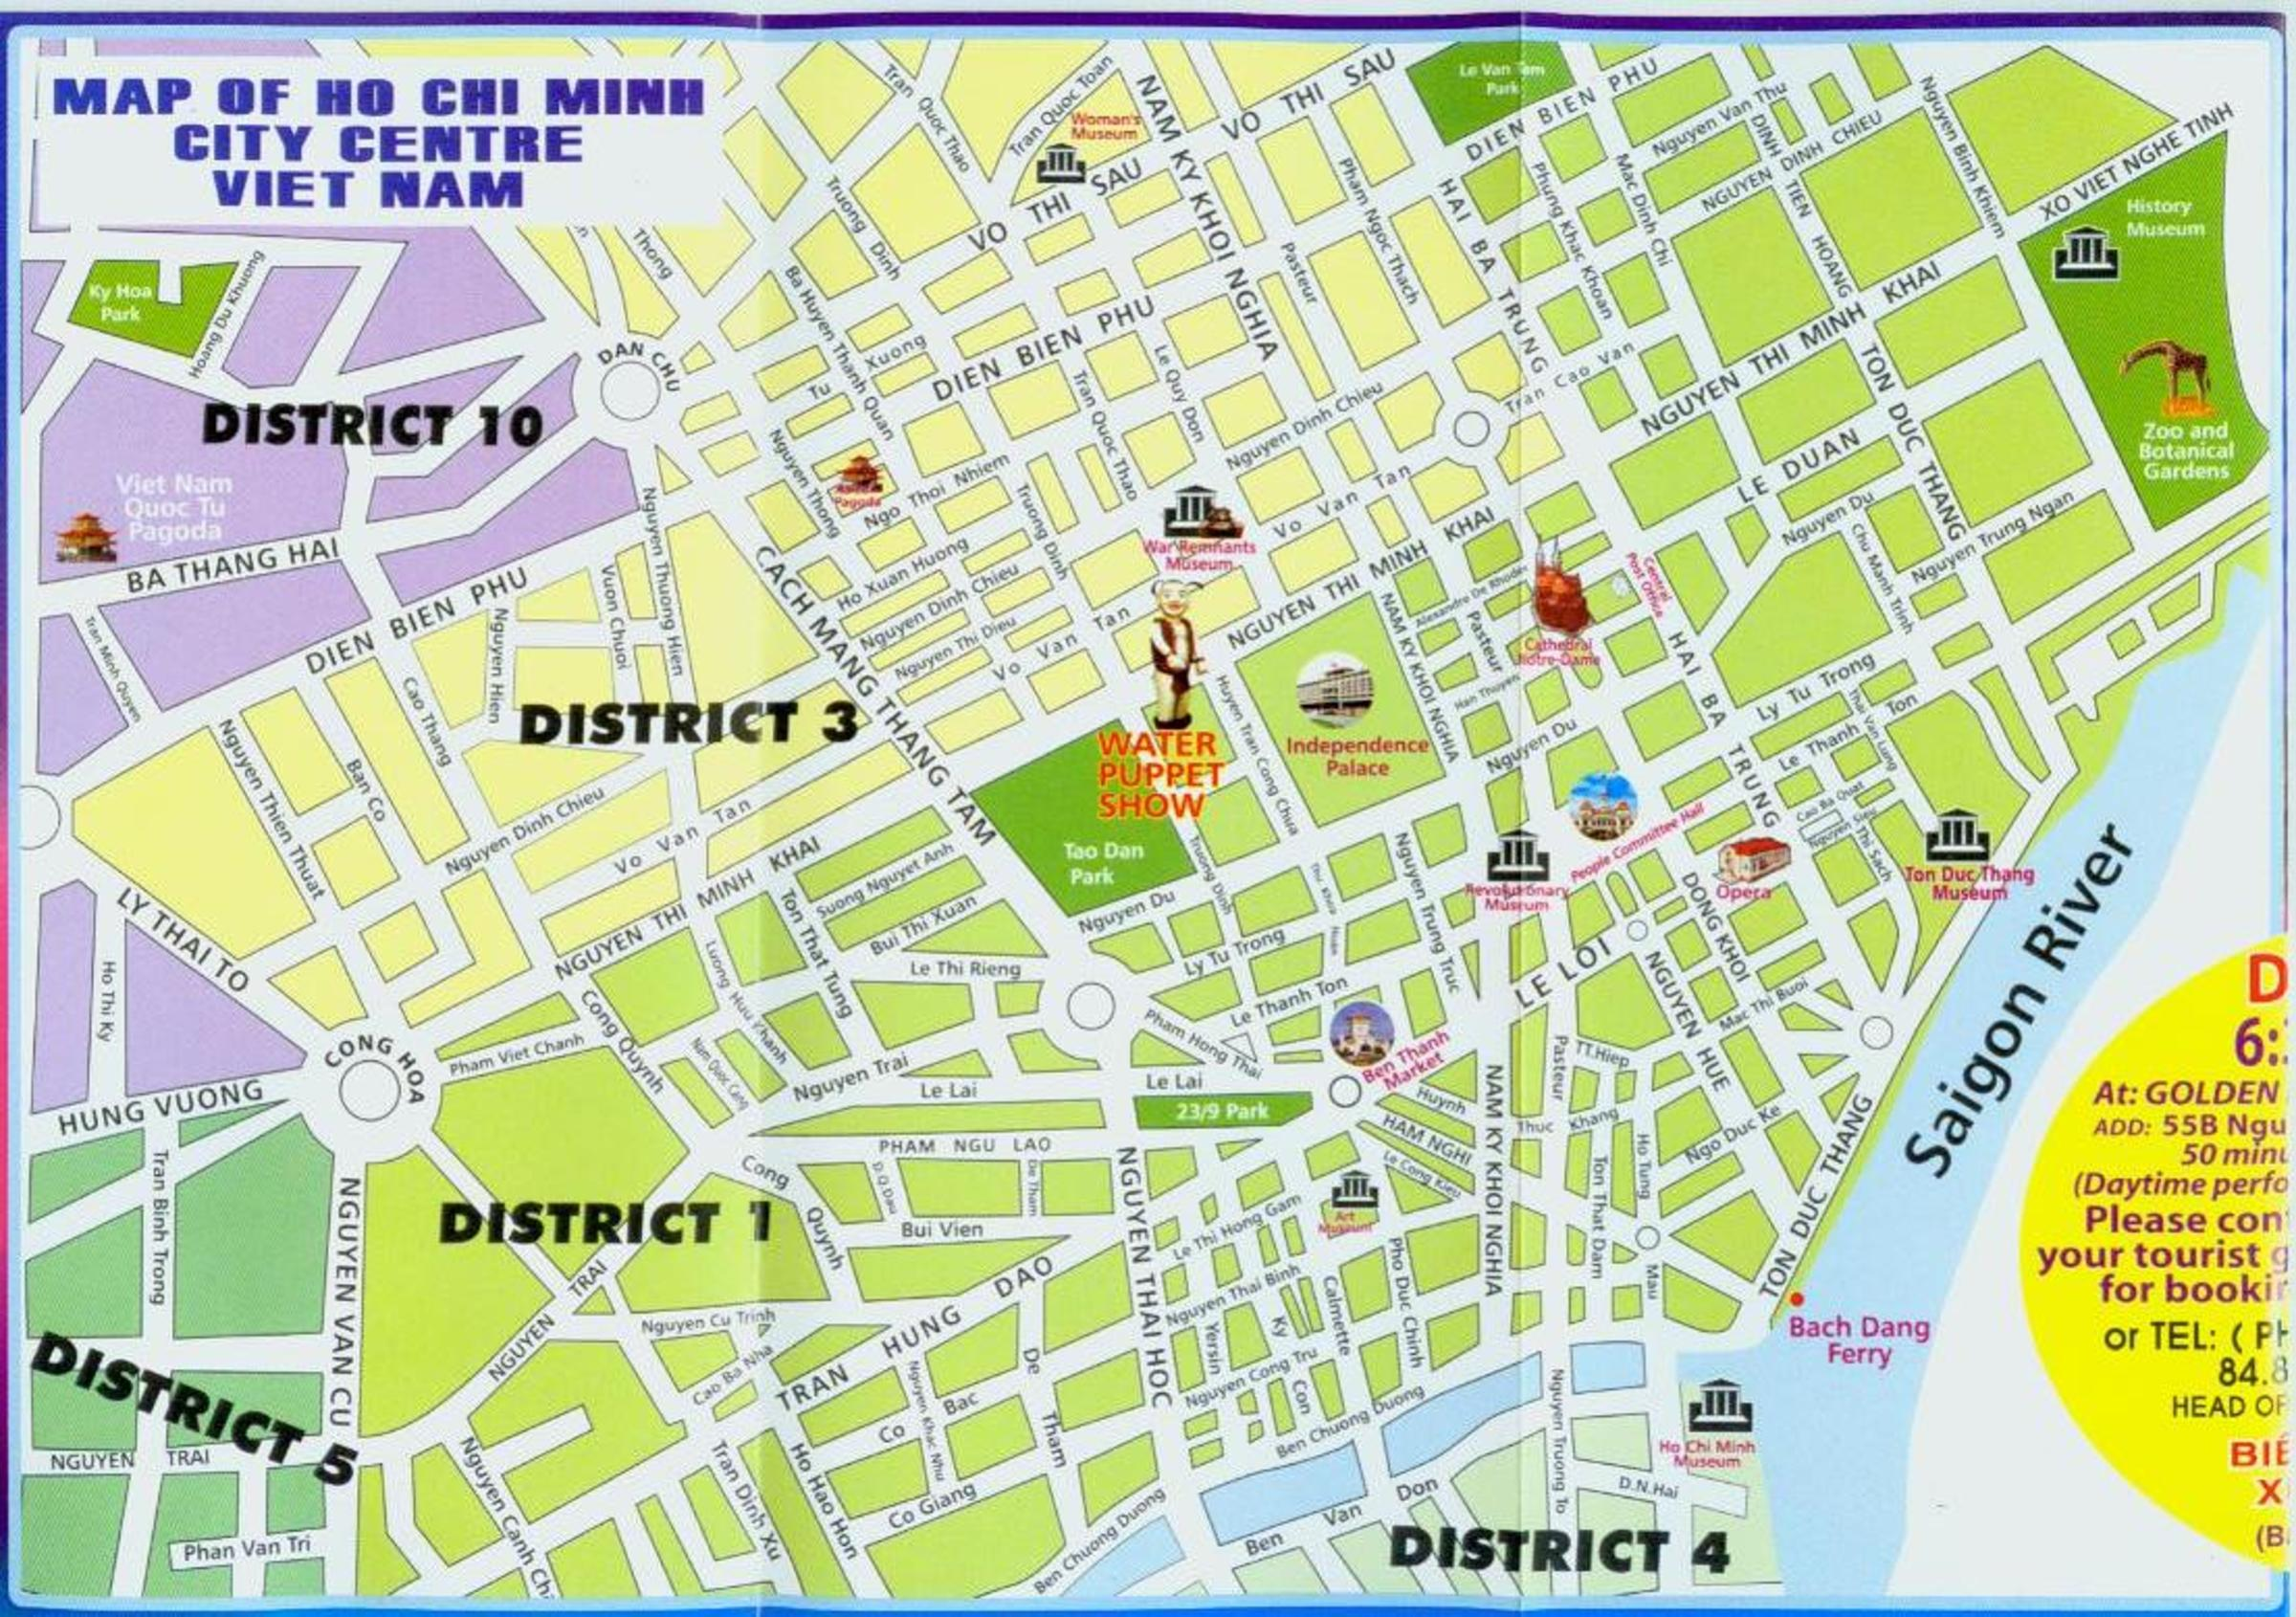 Map of Ho Chi Minh City Centre Viet Nam Virtual Saigon